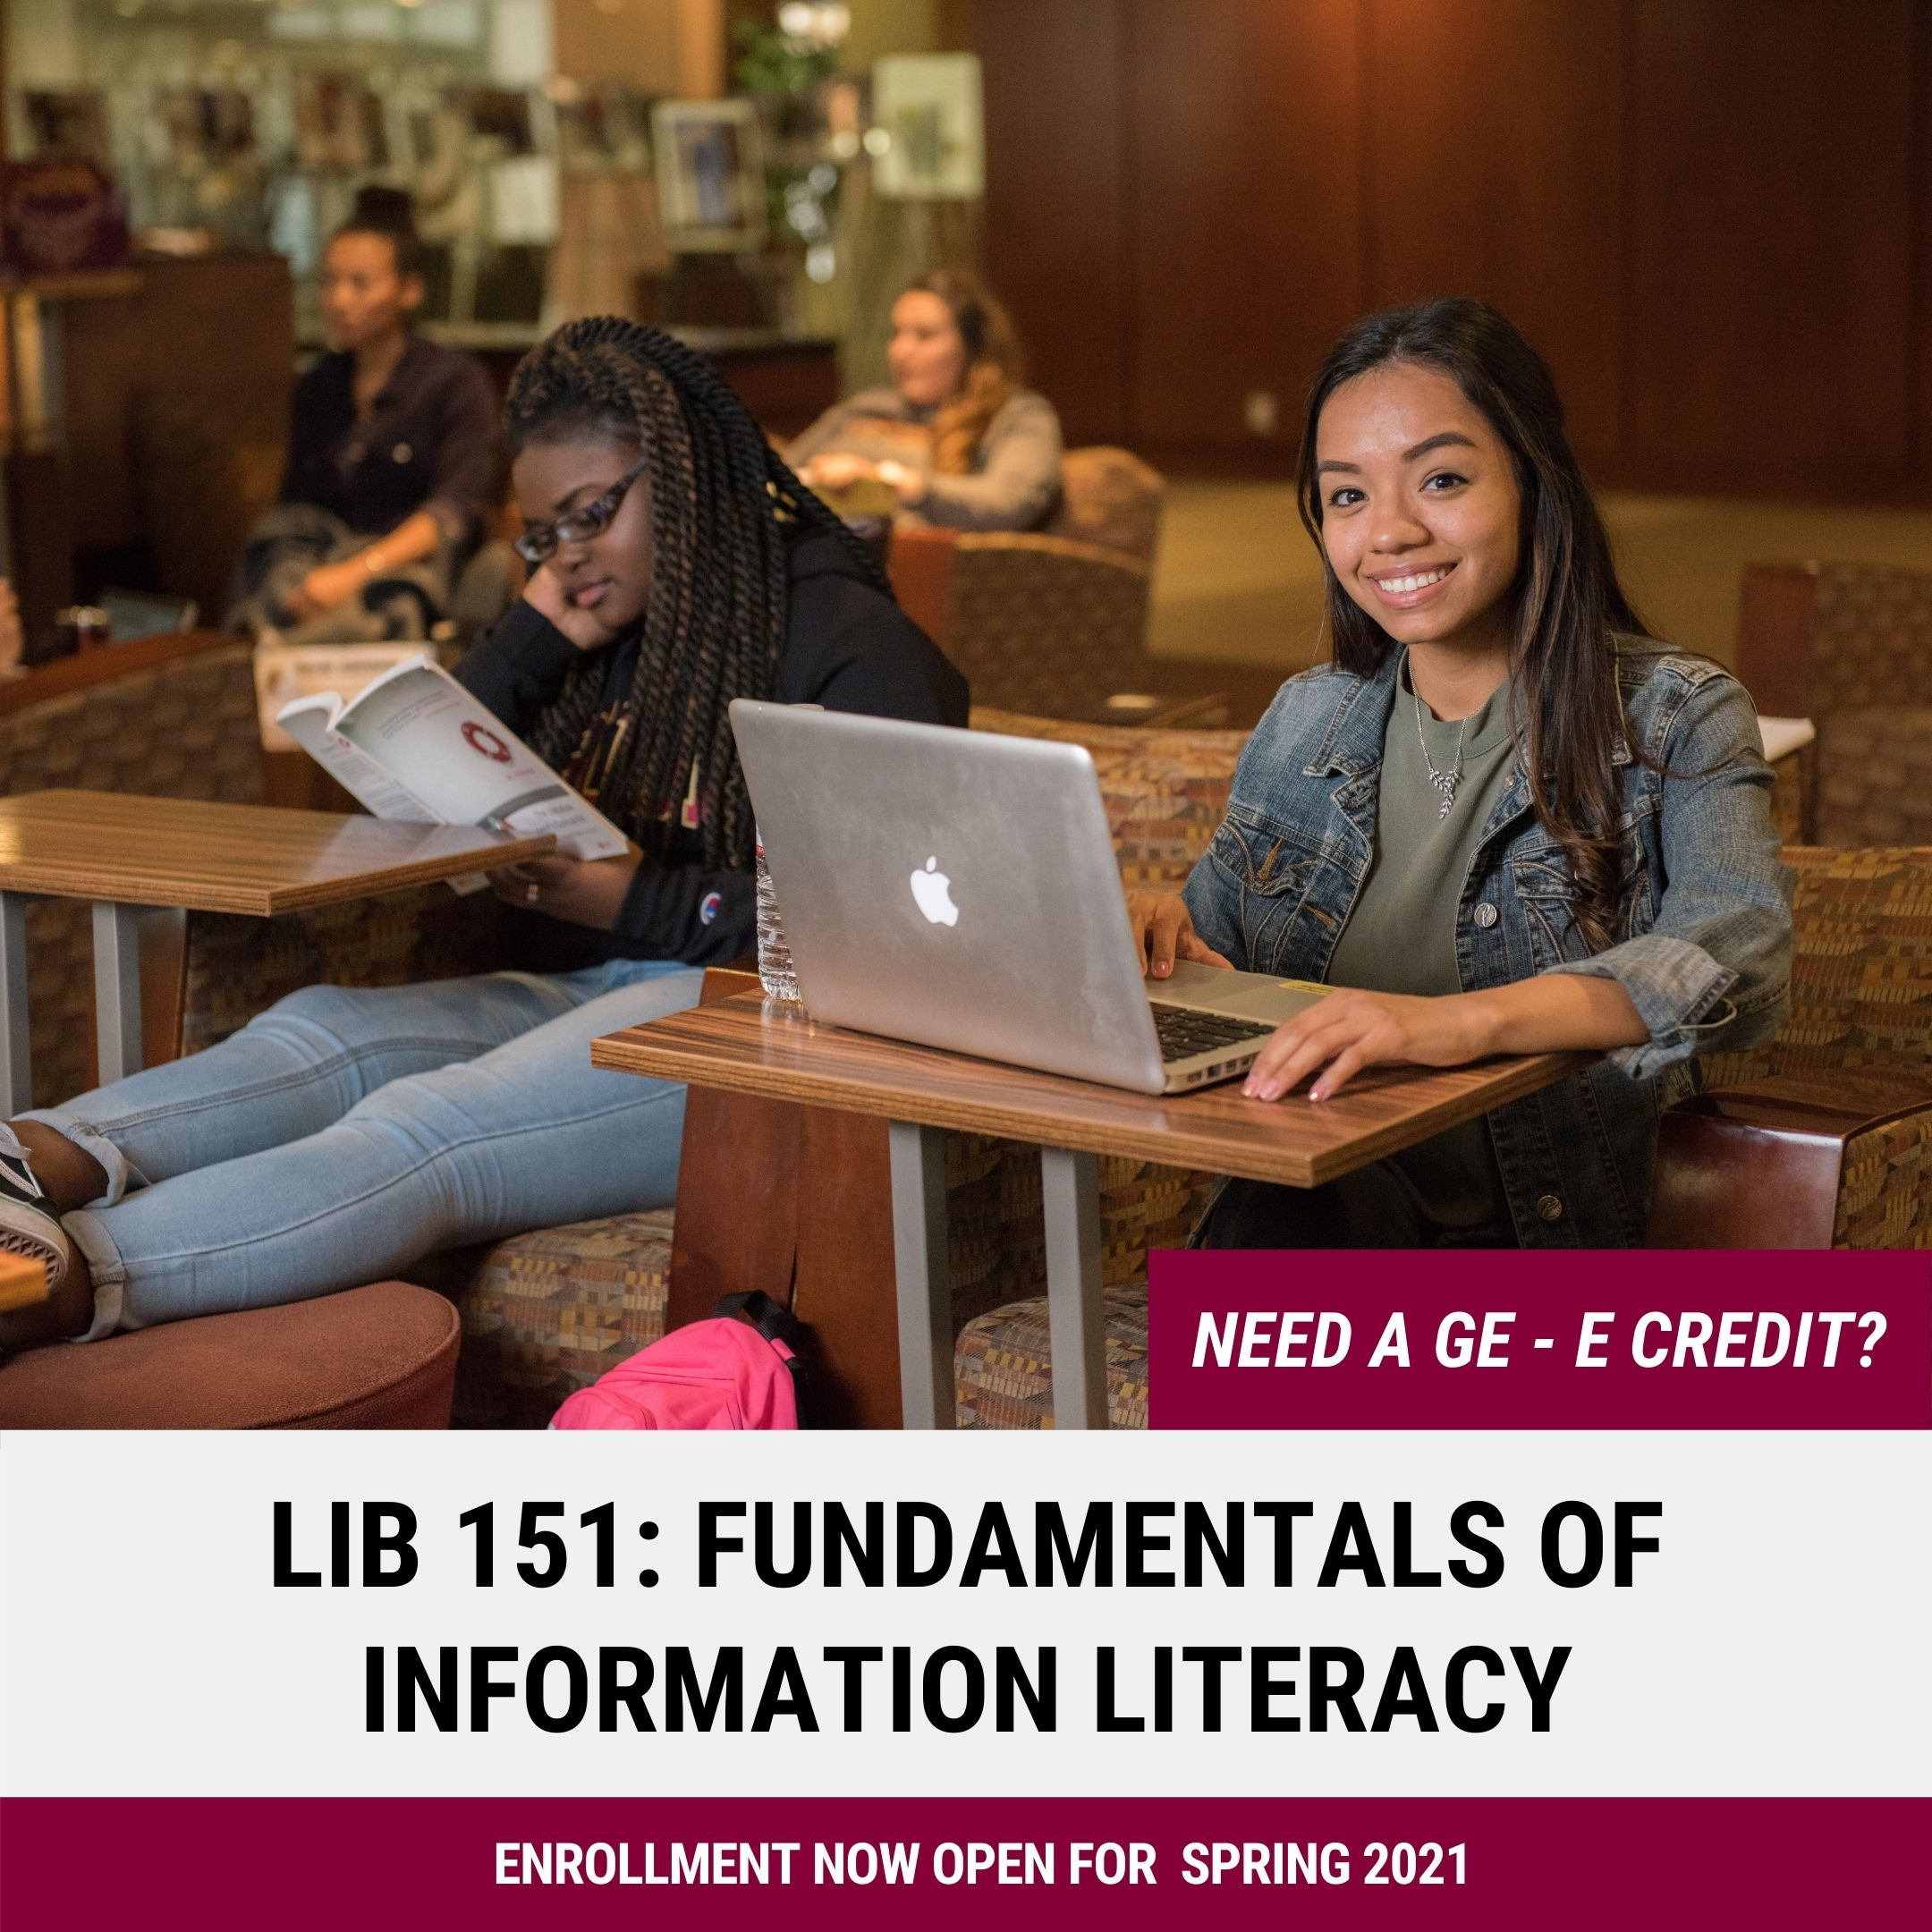 Students studying in the Dominguez Hills at the CSUDH Library. Need a GE - E Credit? LIB 151: Fundamentals of Information Literacy. Enrollment now open for Spring 2021.